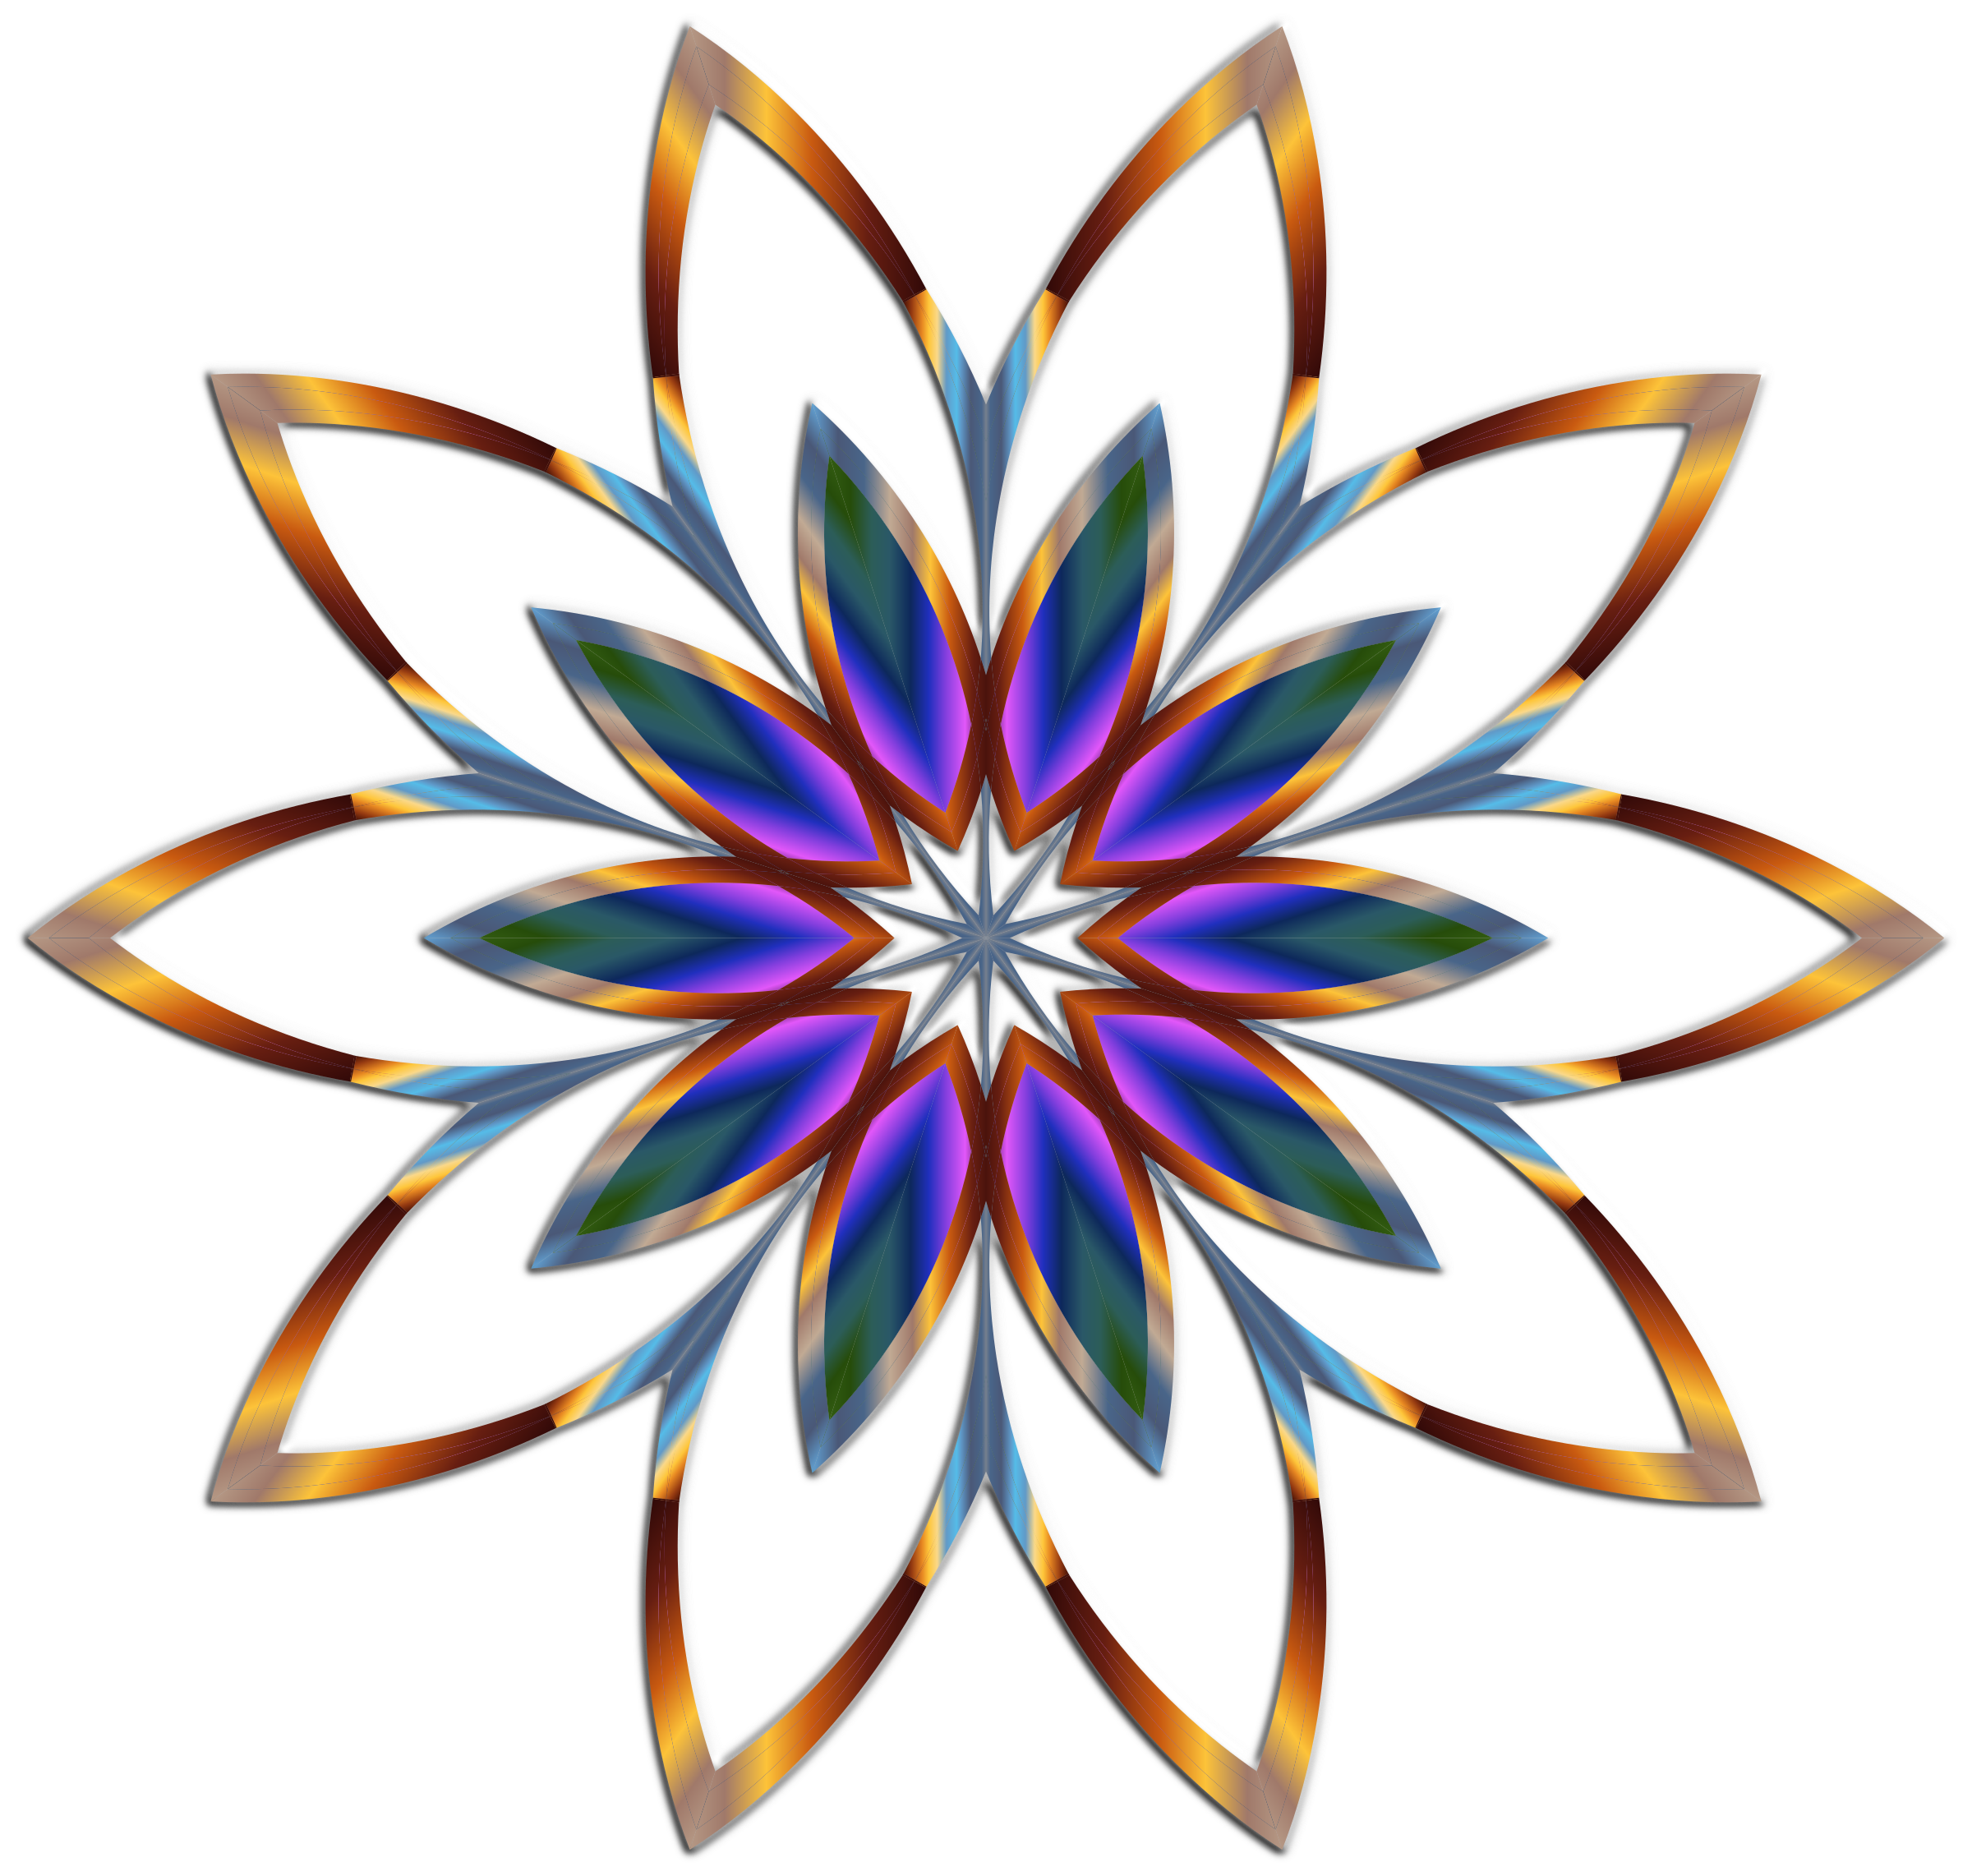 Big image png. Clipart flower pretty flower